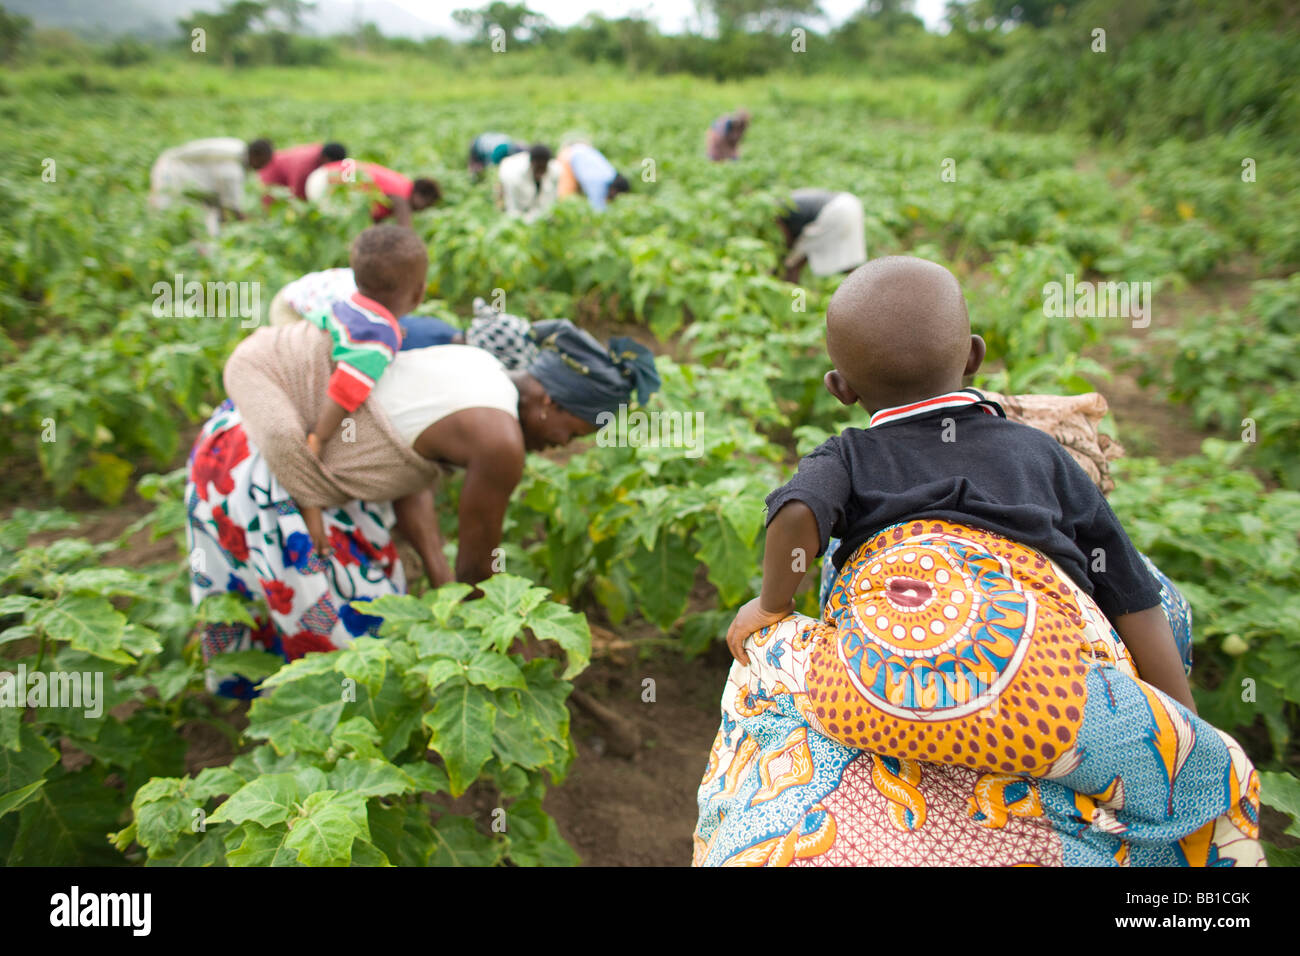 Women working in field with children on their backs, Have, Ghana, Africa. - Stock Image